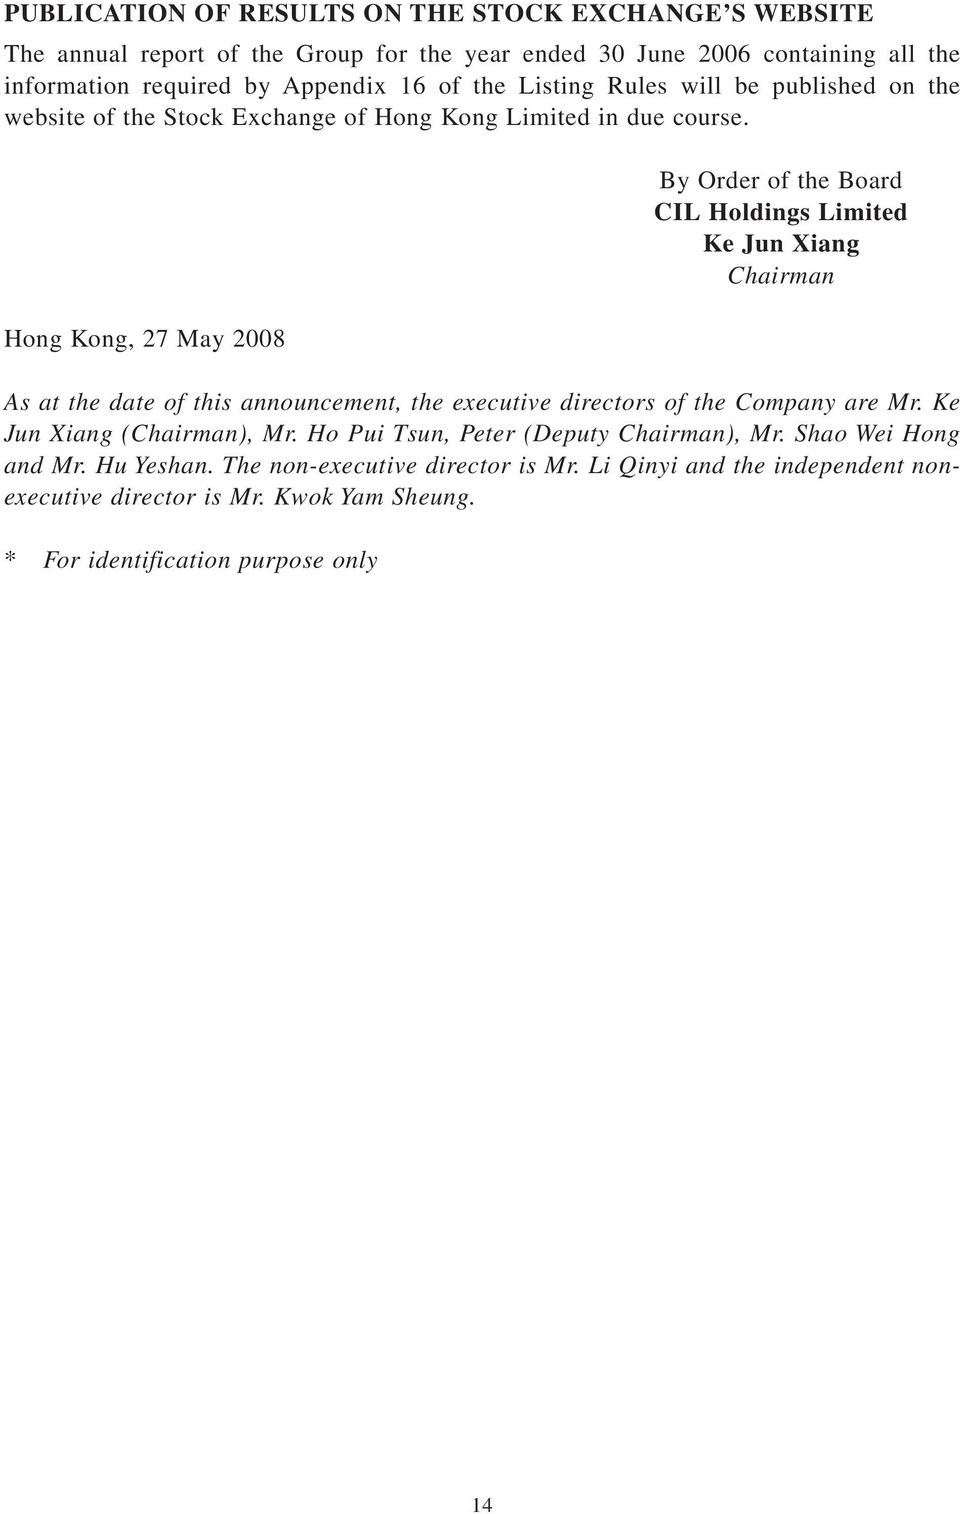 Hong Kong, 27 May 2008 By Order of the Board CIL Holdings Limited Ke Jun Xiang Chairman As at the date of this announcement, the executive directors of the Company are Mr.